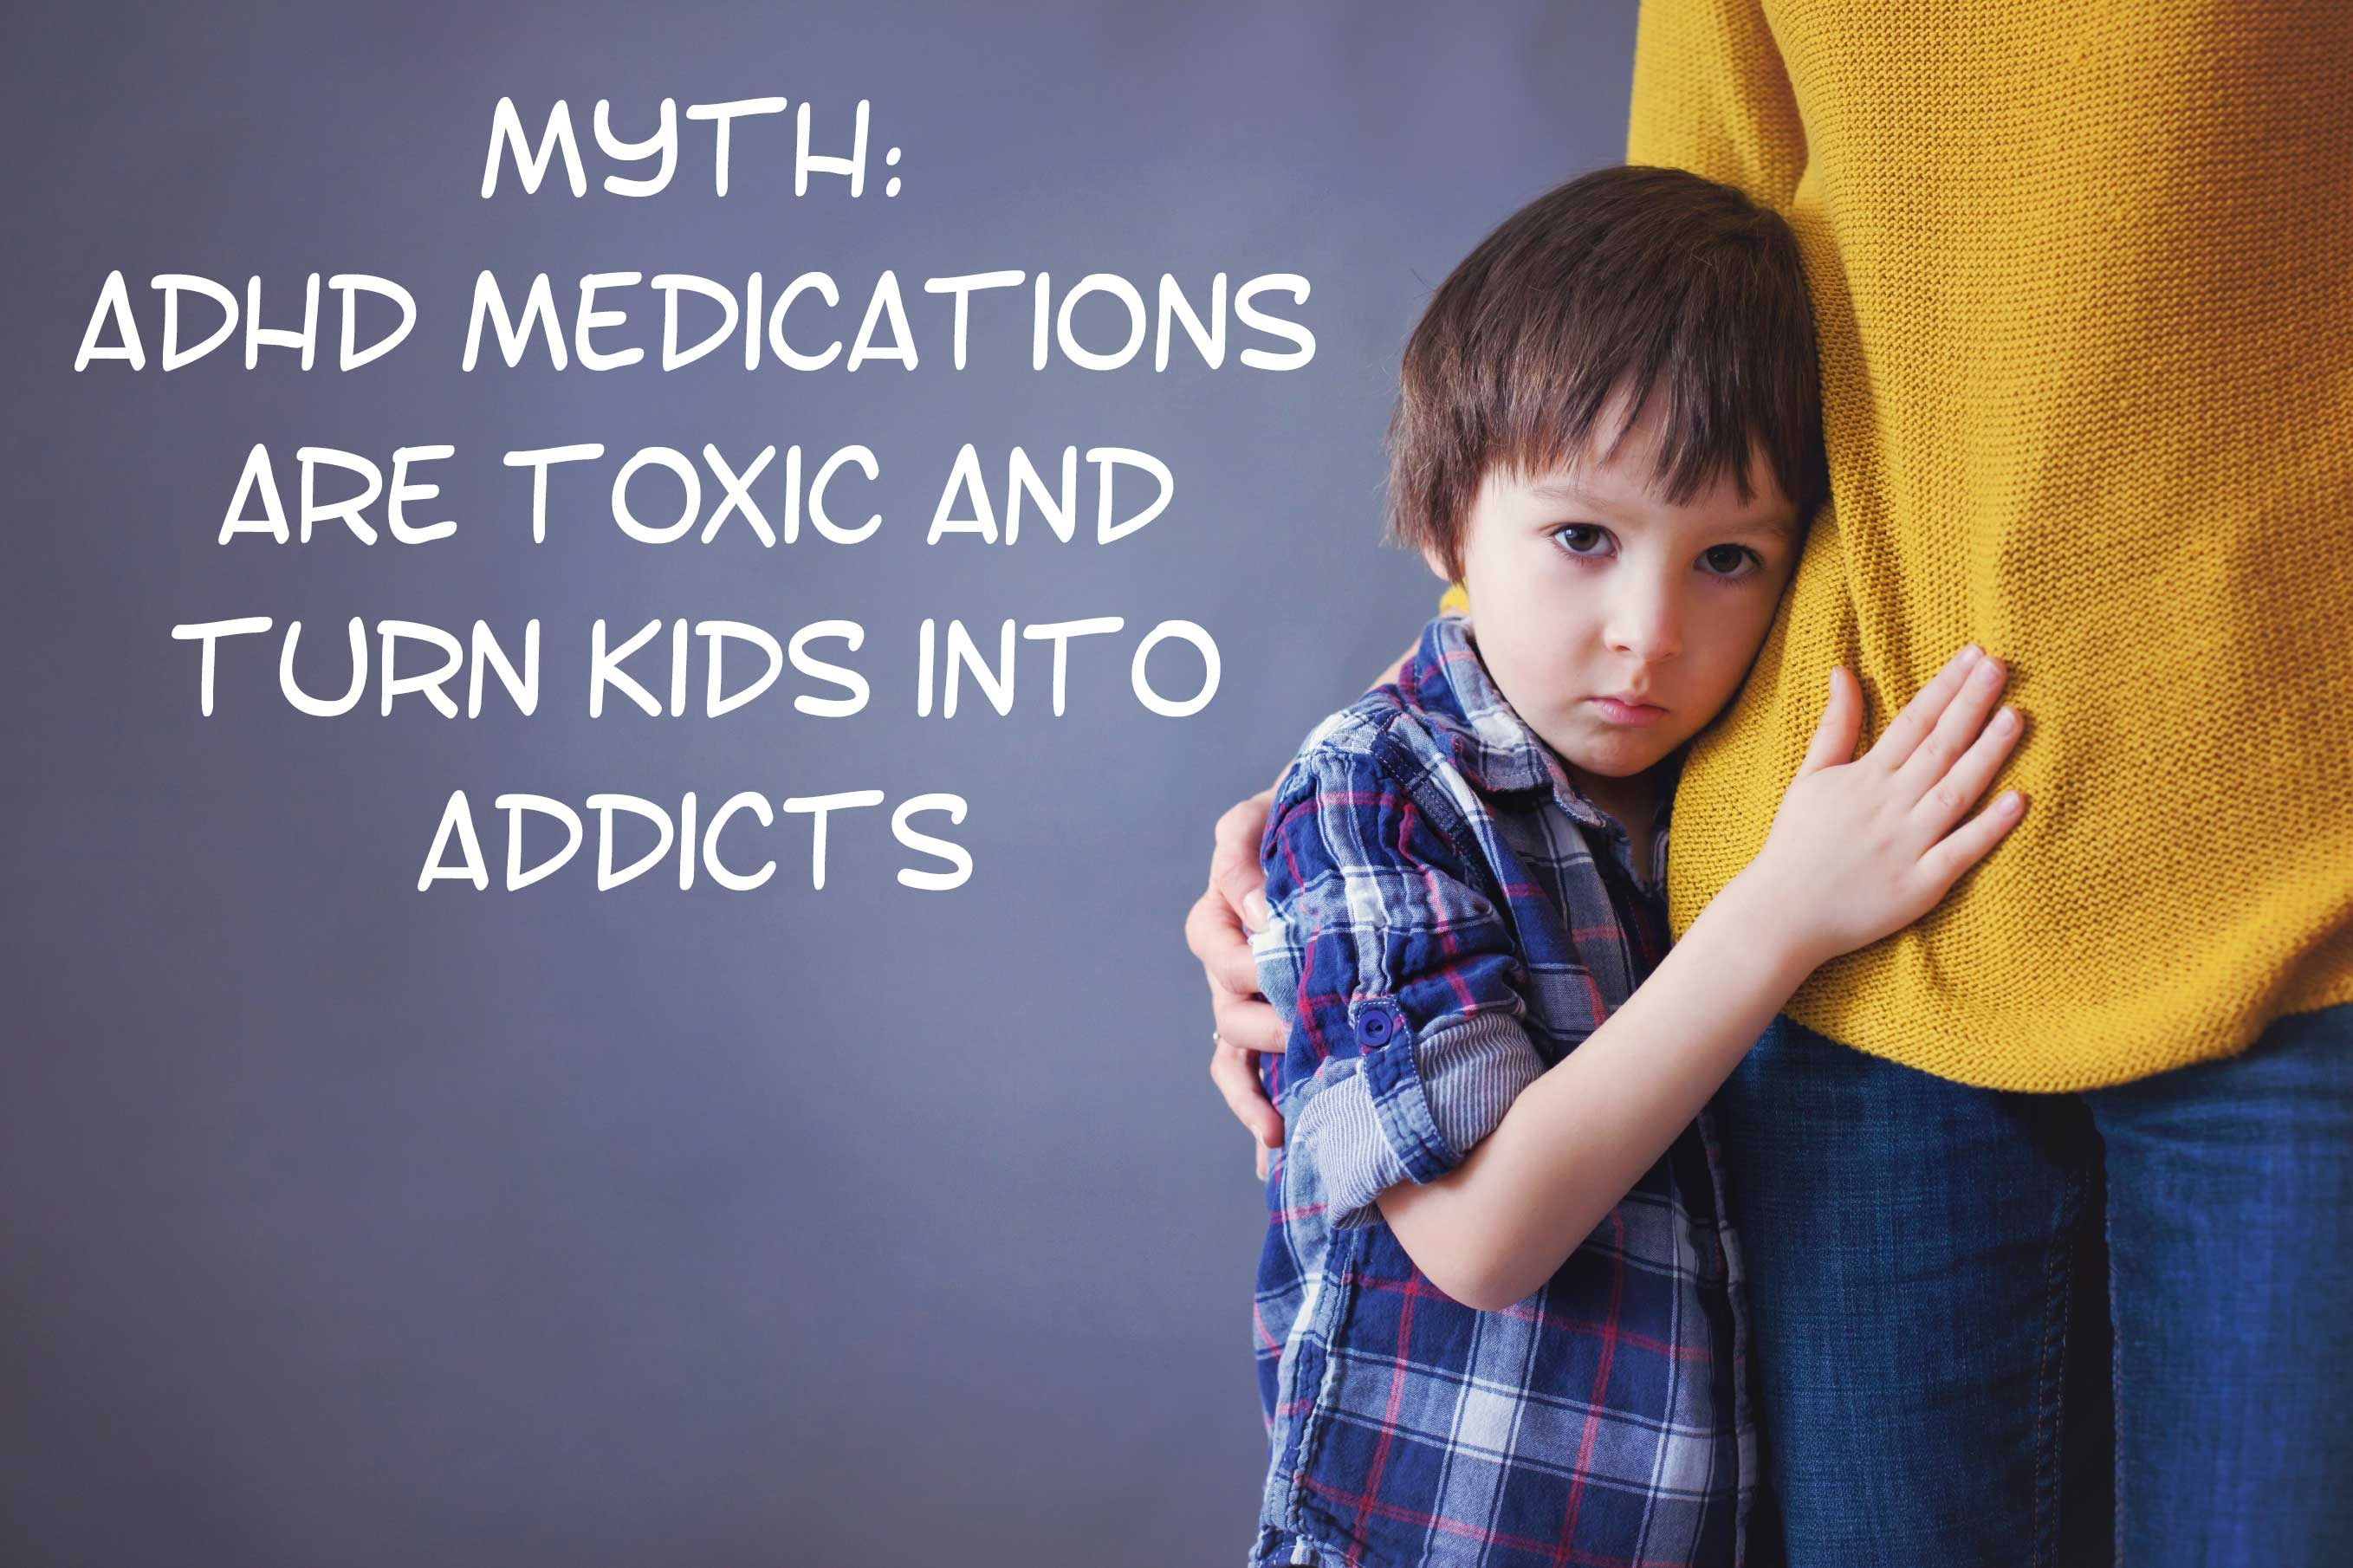 Myth ADHD Medications Are Toxic And Turn Kids Into Addicts